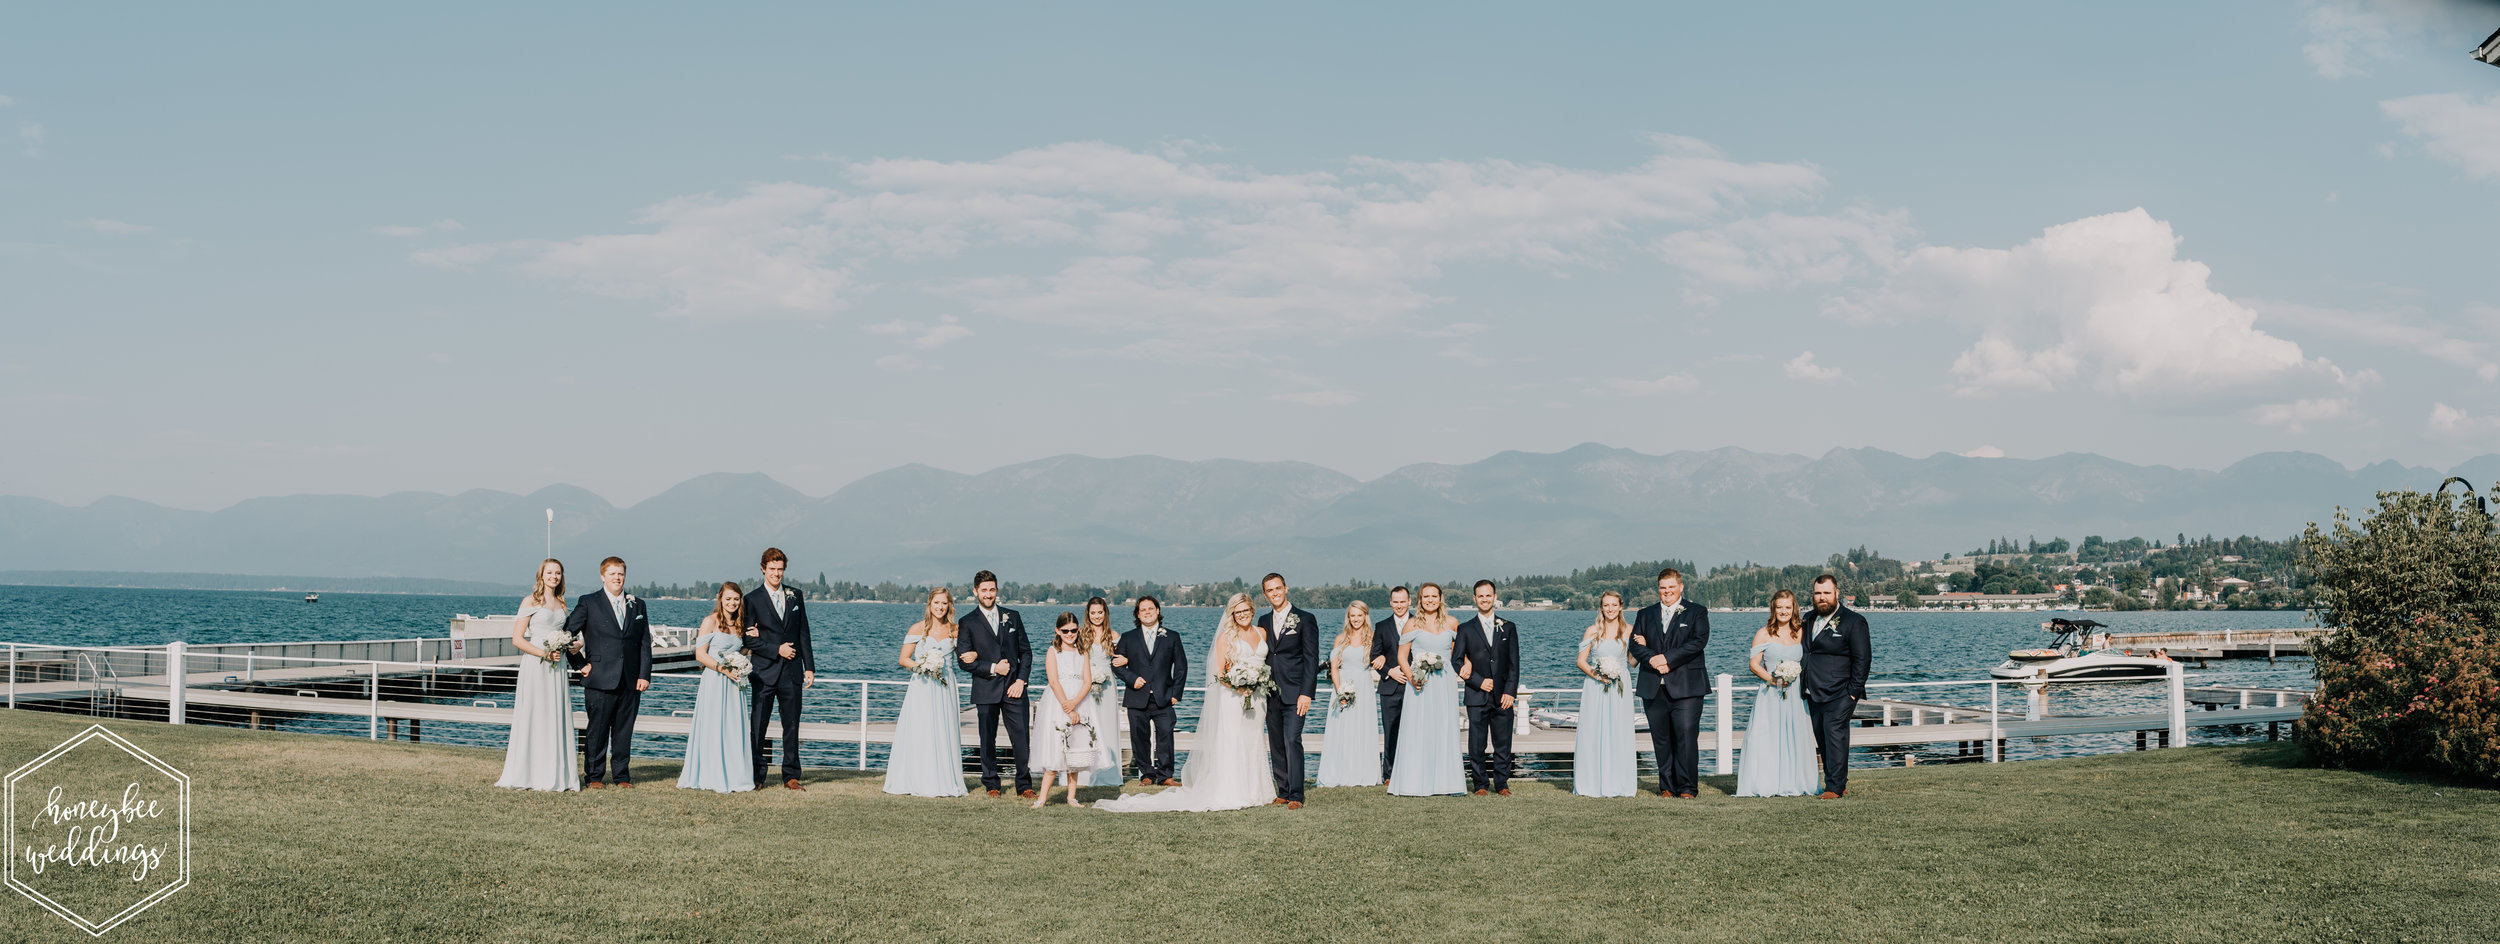 Kwatuqnuk Wedding_Montana Wedding Photographer_Katie White & Tommy Tosic_August 04, 2018-658-Pano.jpg